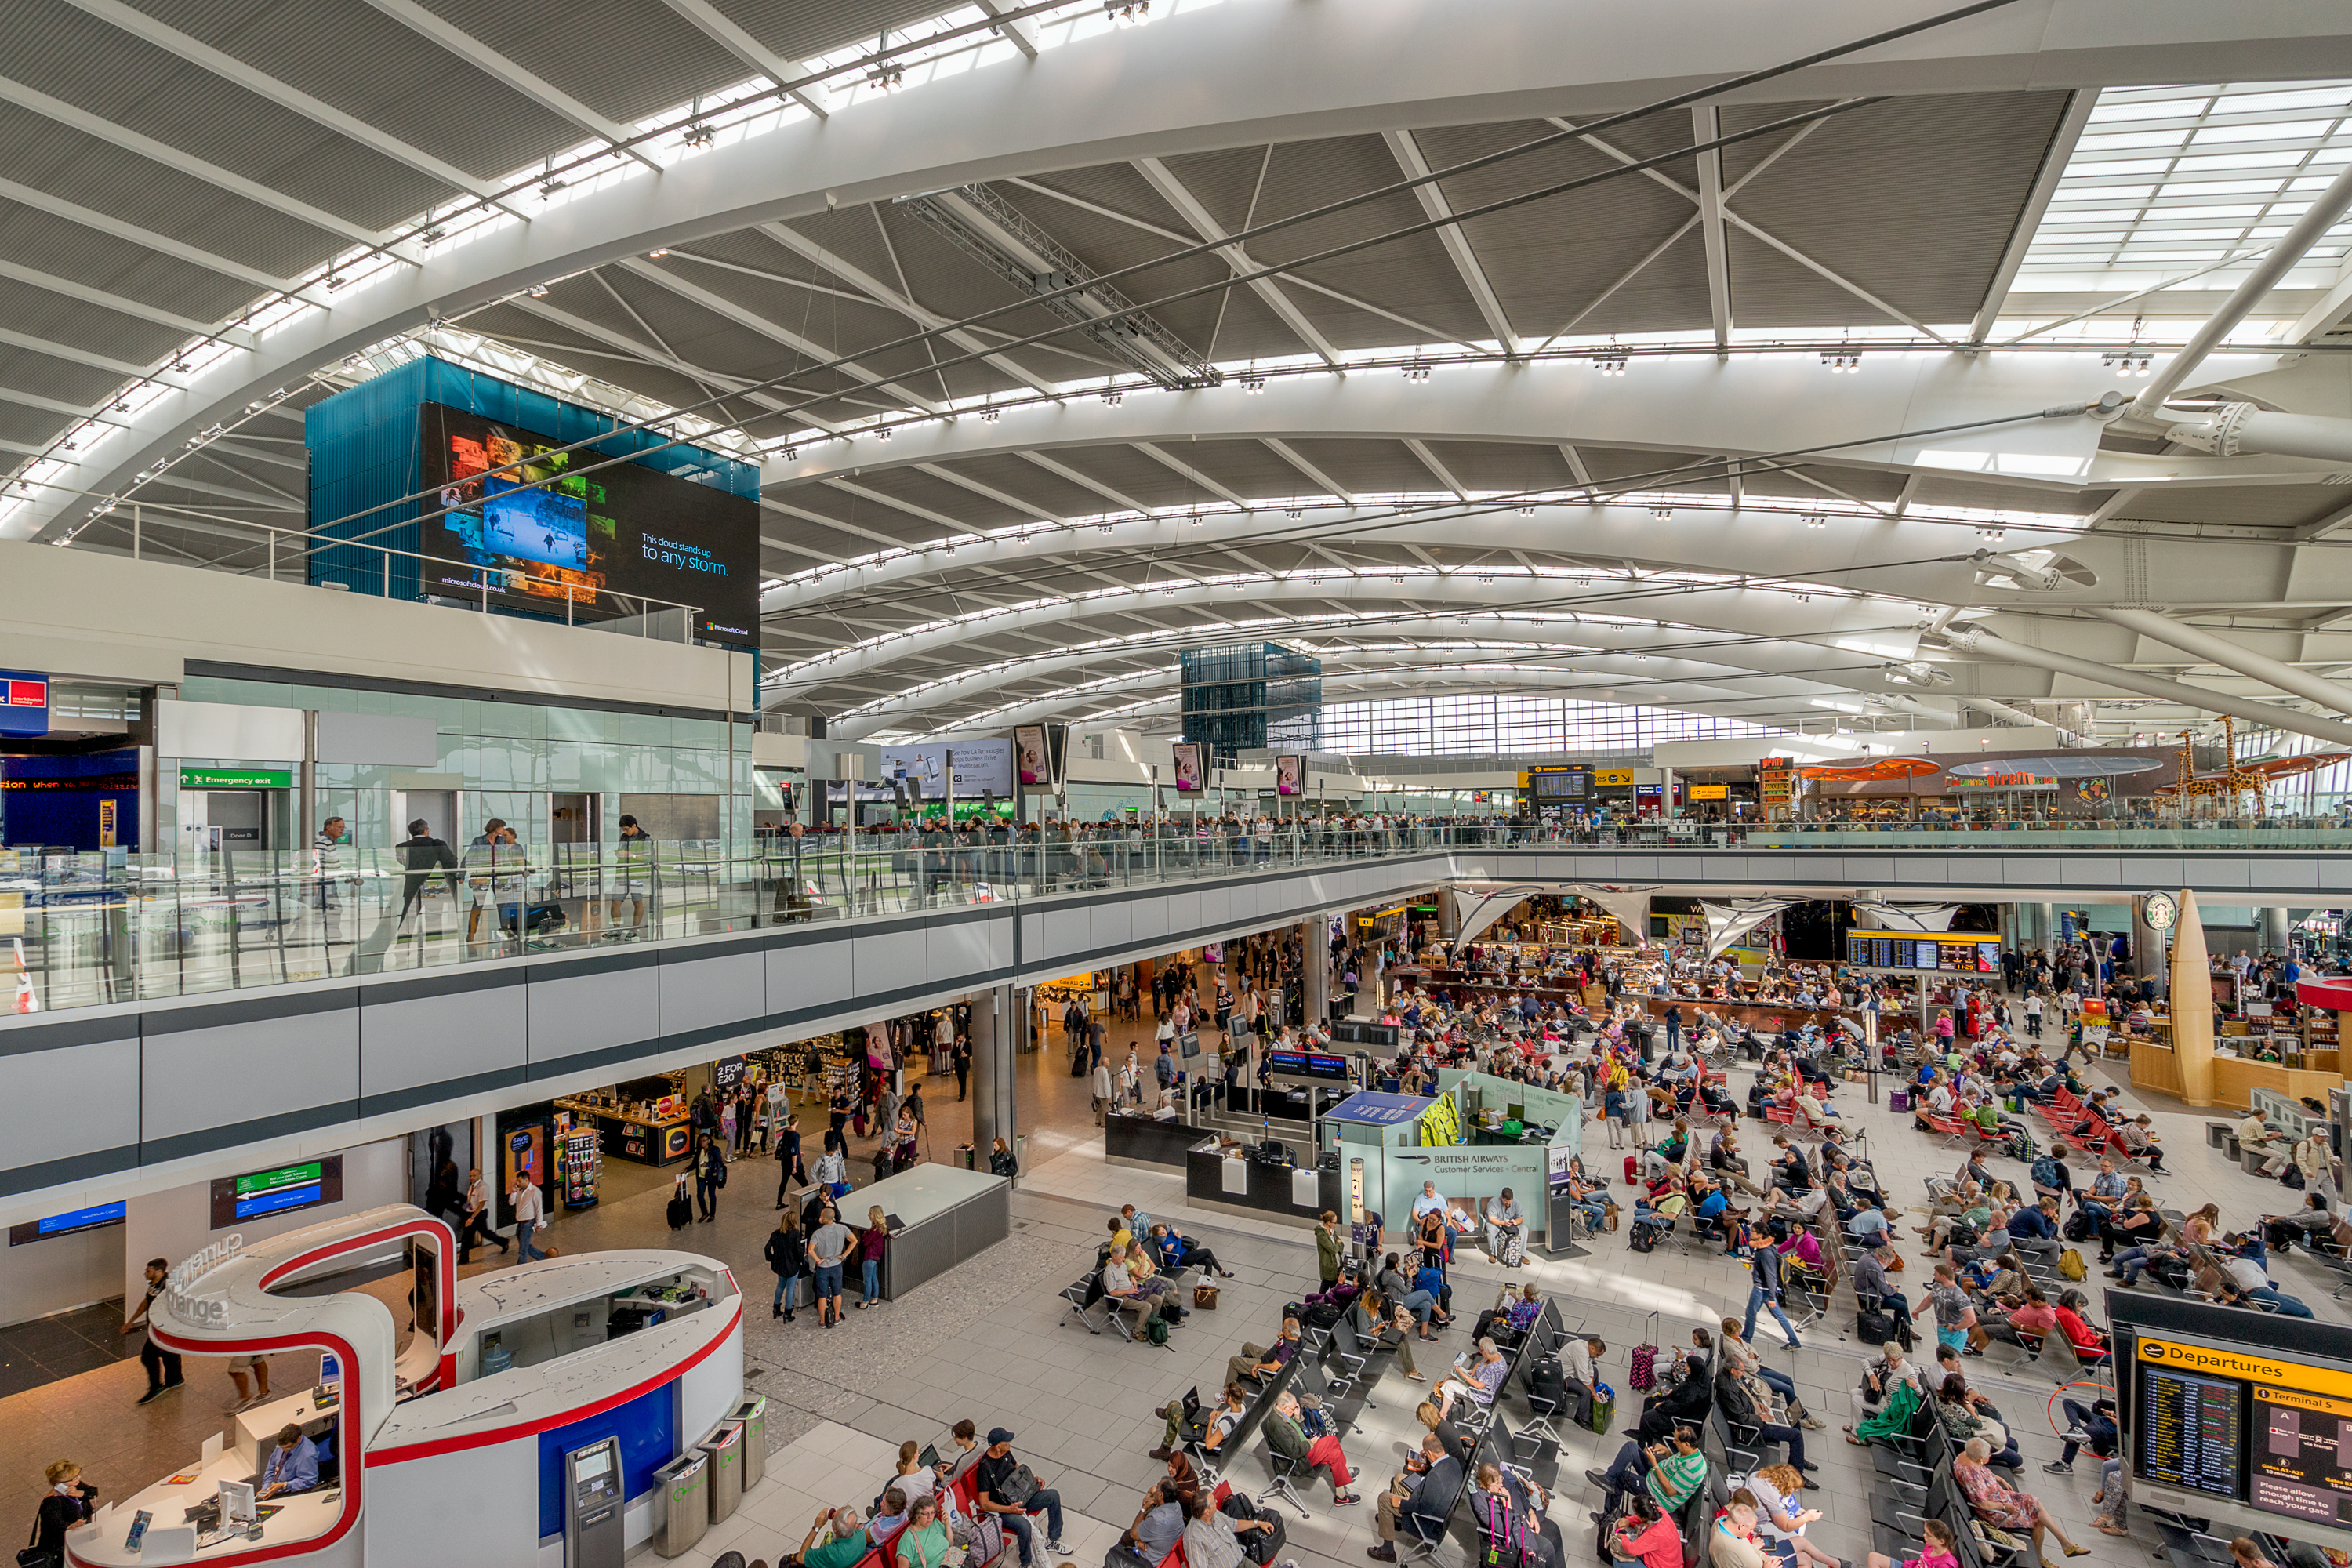 London, England - September 1, 2015: Heathrow Terminal 5 is an airport terminal at Heathrow Airport serving the UK city of London. Opened in 2008, the main building in the complex is the largest free-standing structure in the United